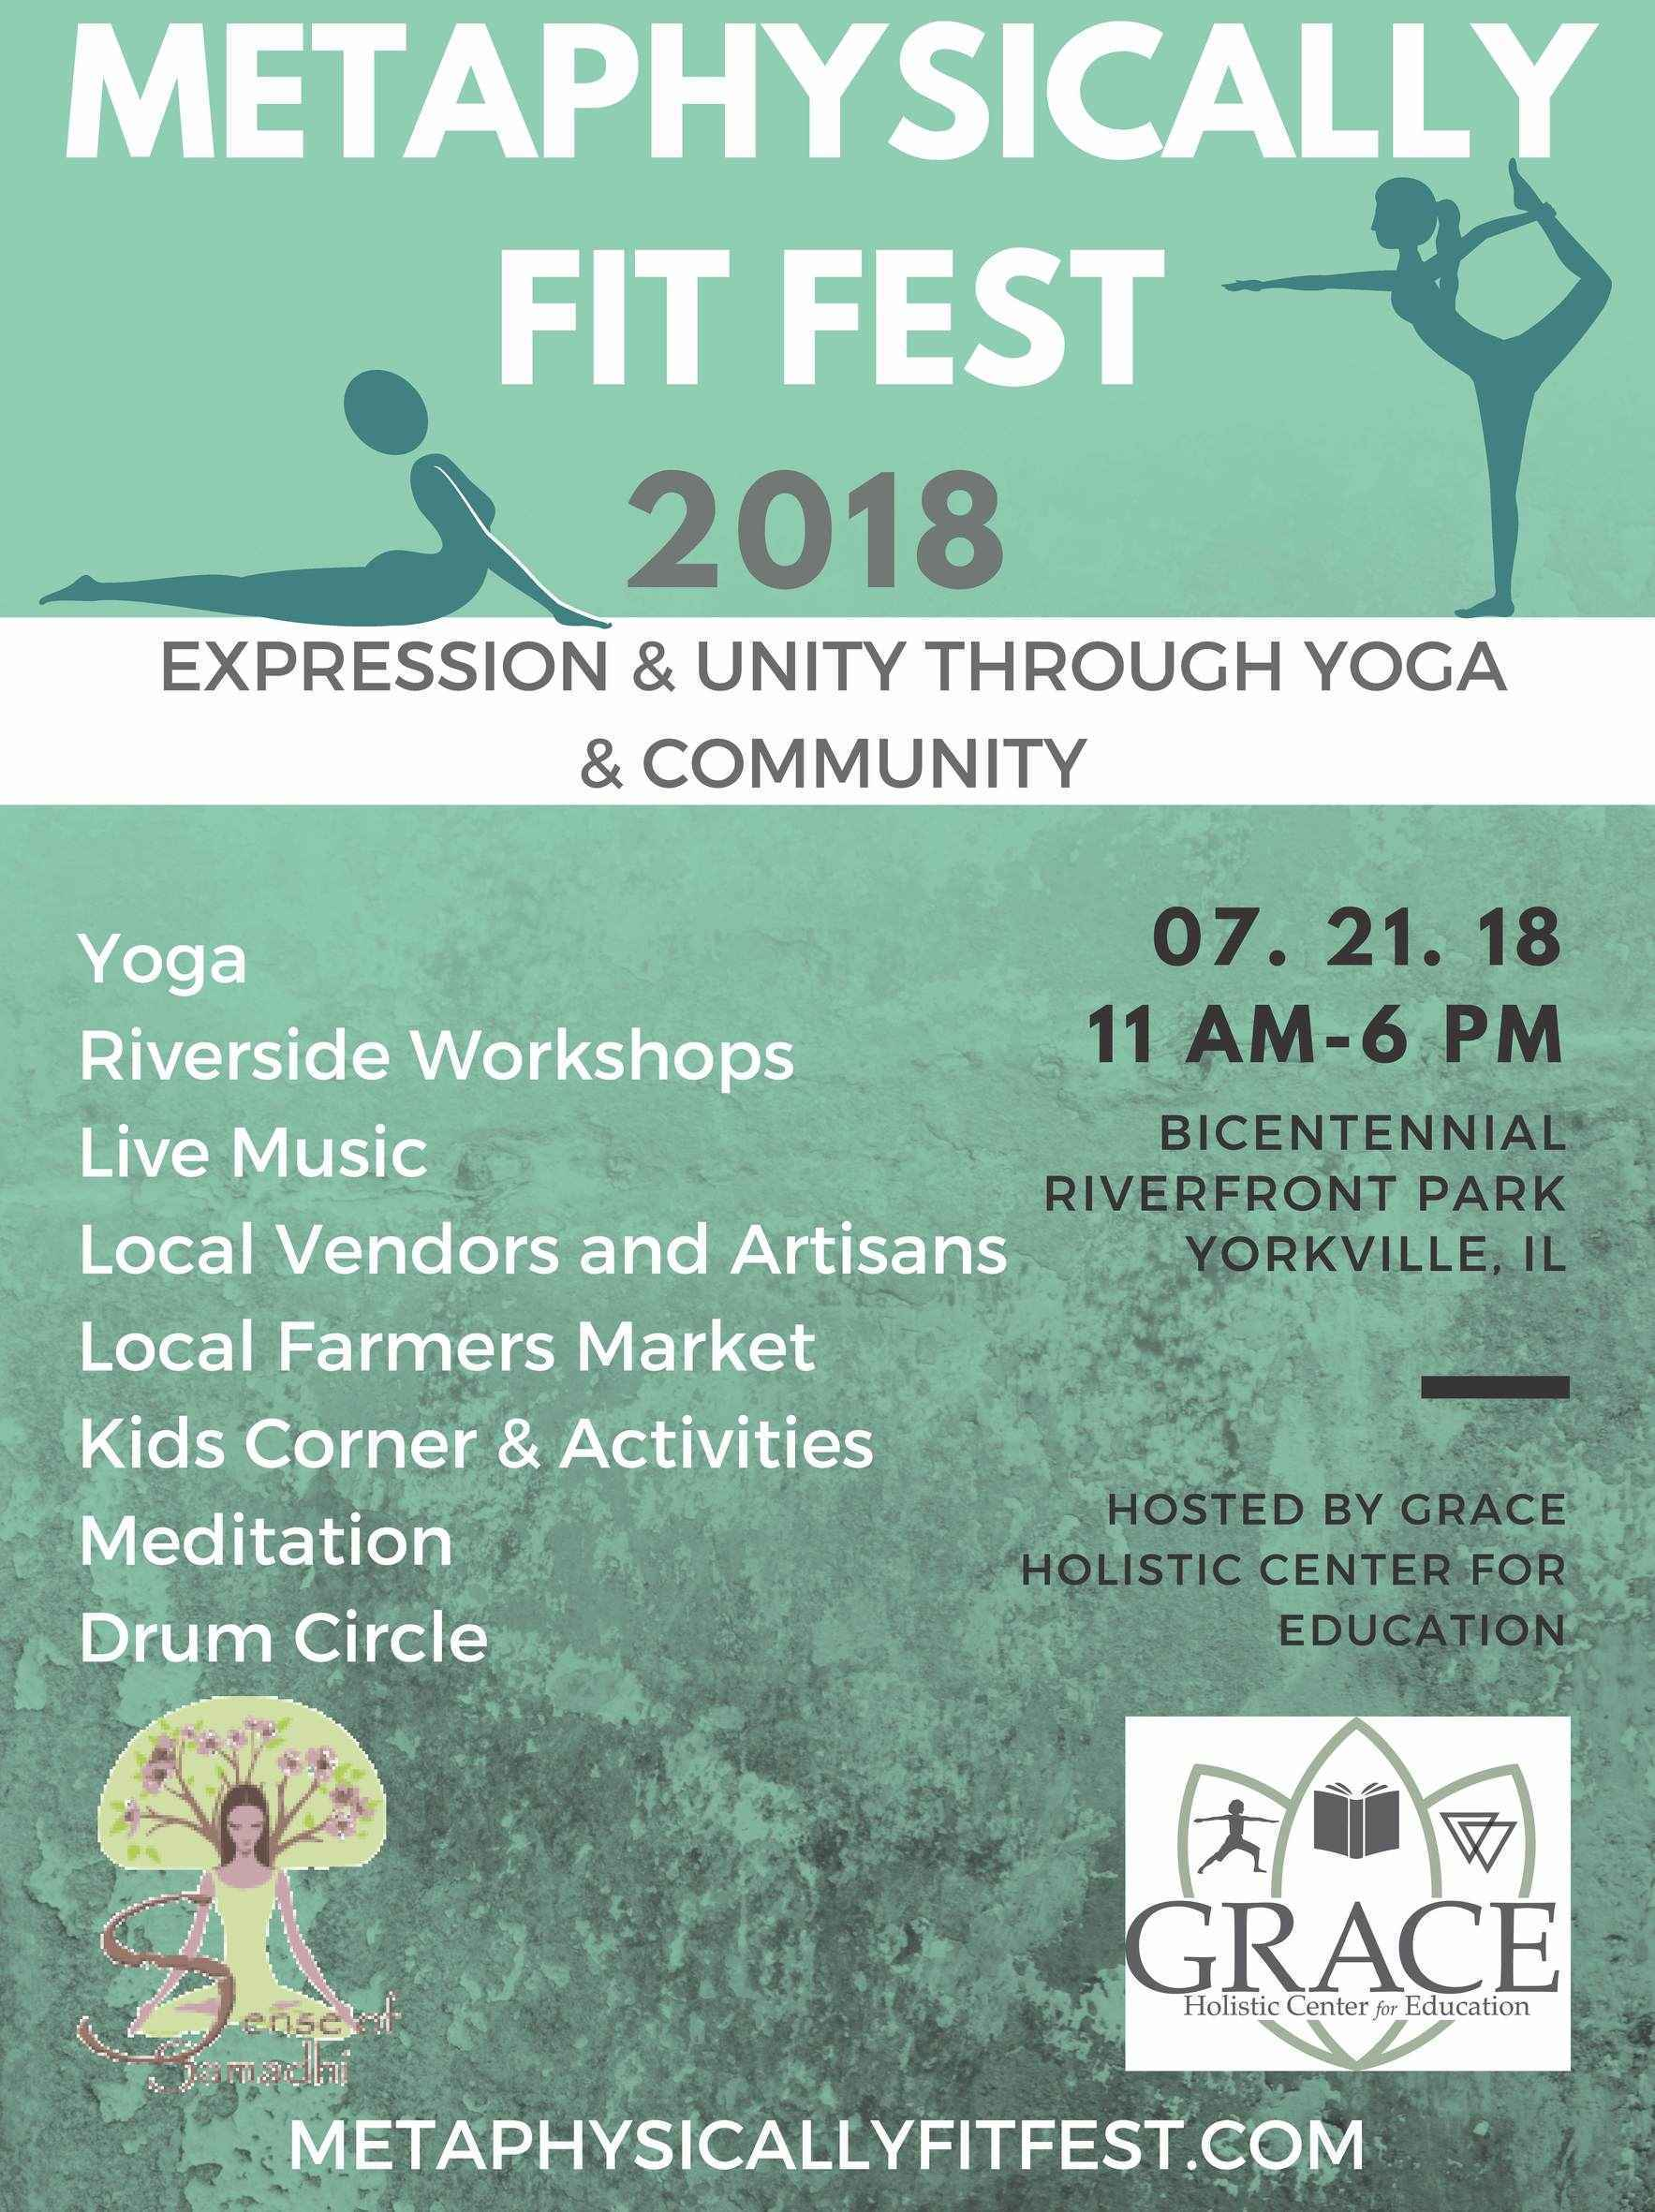 Metaphysically Fit Fest 2018 image